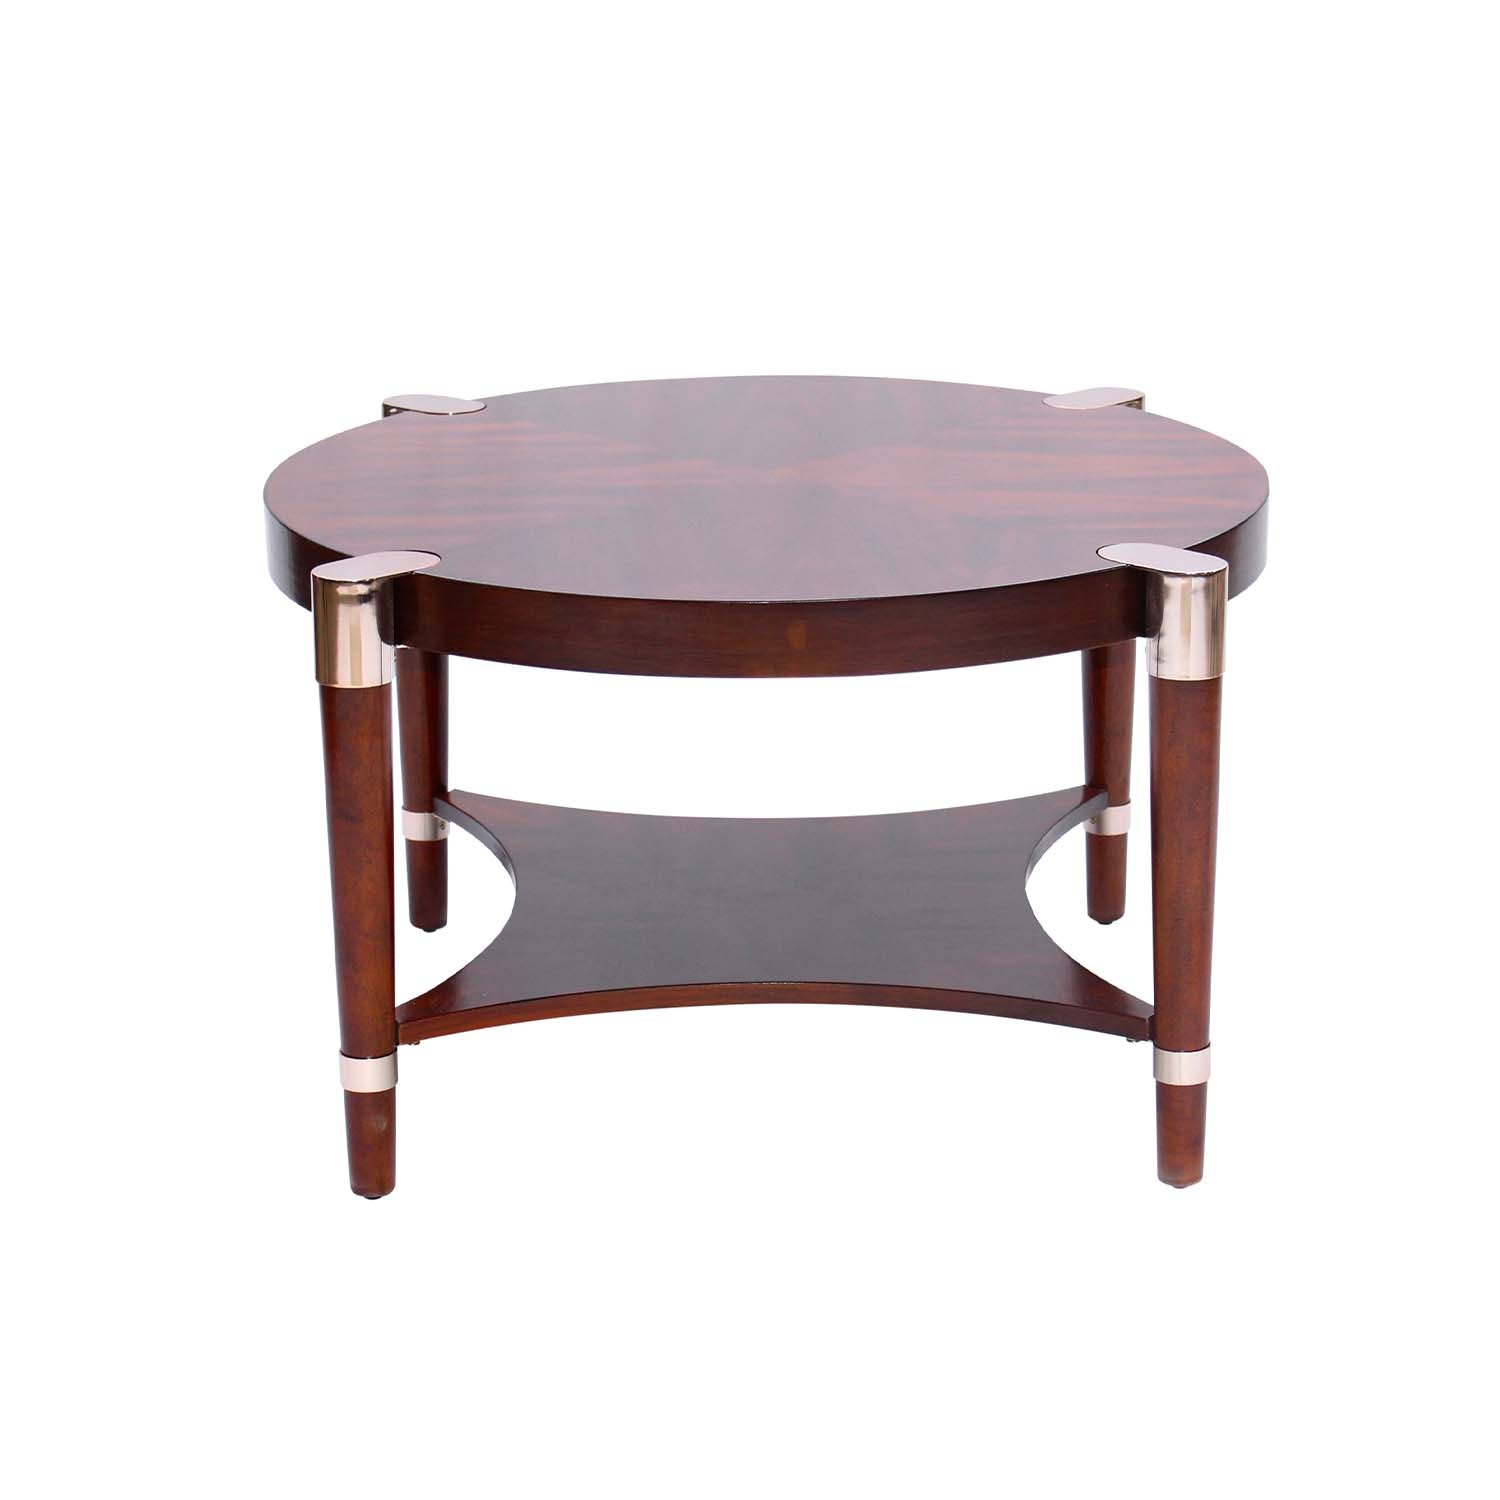 Mid-Century Modern Style Round Coffee Table, Contemporary